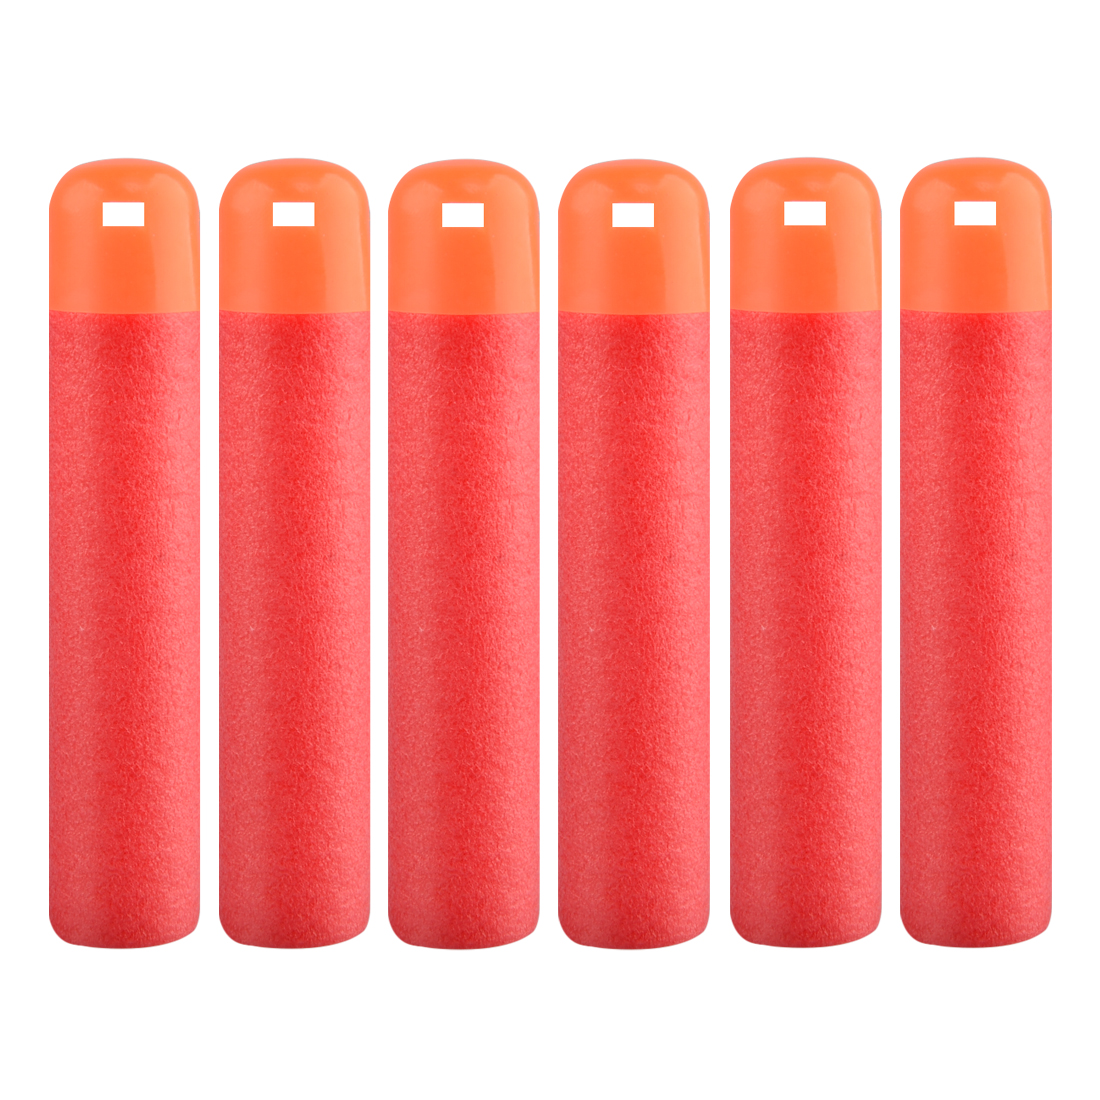 30Pcs/Lot 9.5cm Red Sniper Rifle Darts Christmas Gift Bullets For Nerf Mega Kids Toy Foam Refill Darts Big Hole Head Bullets